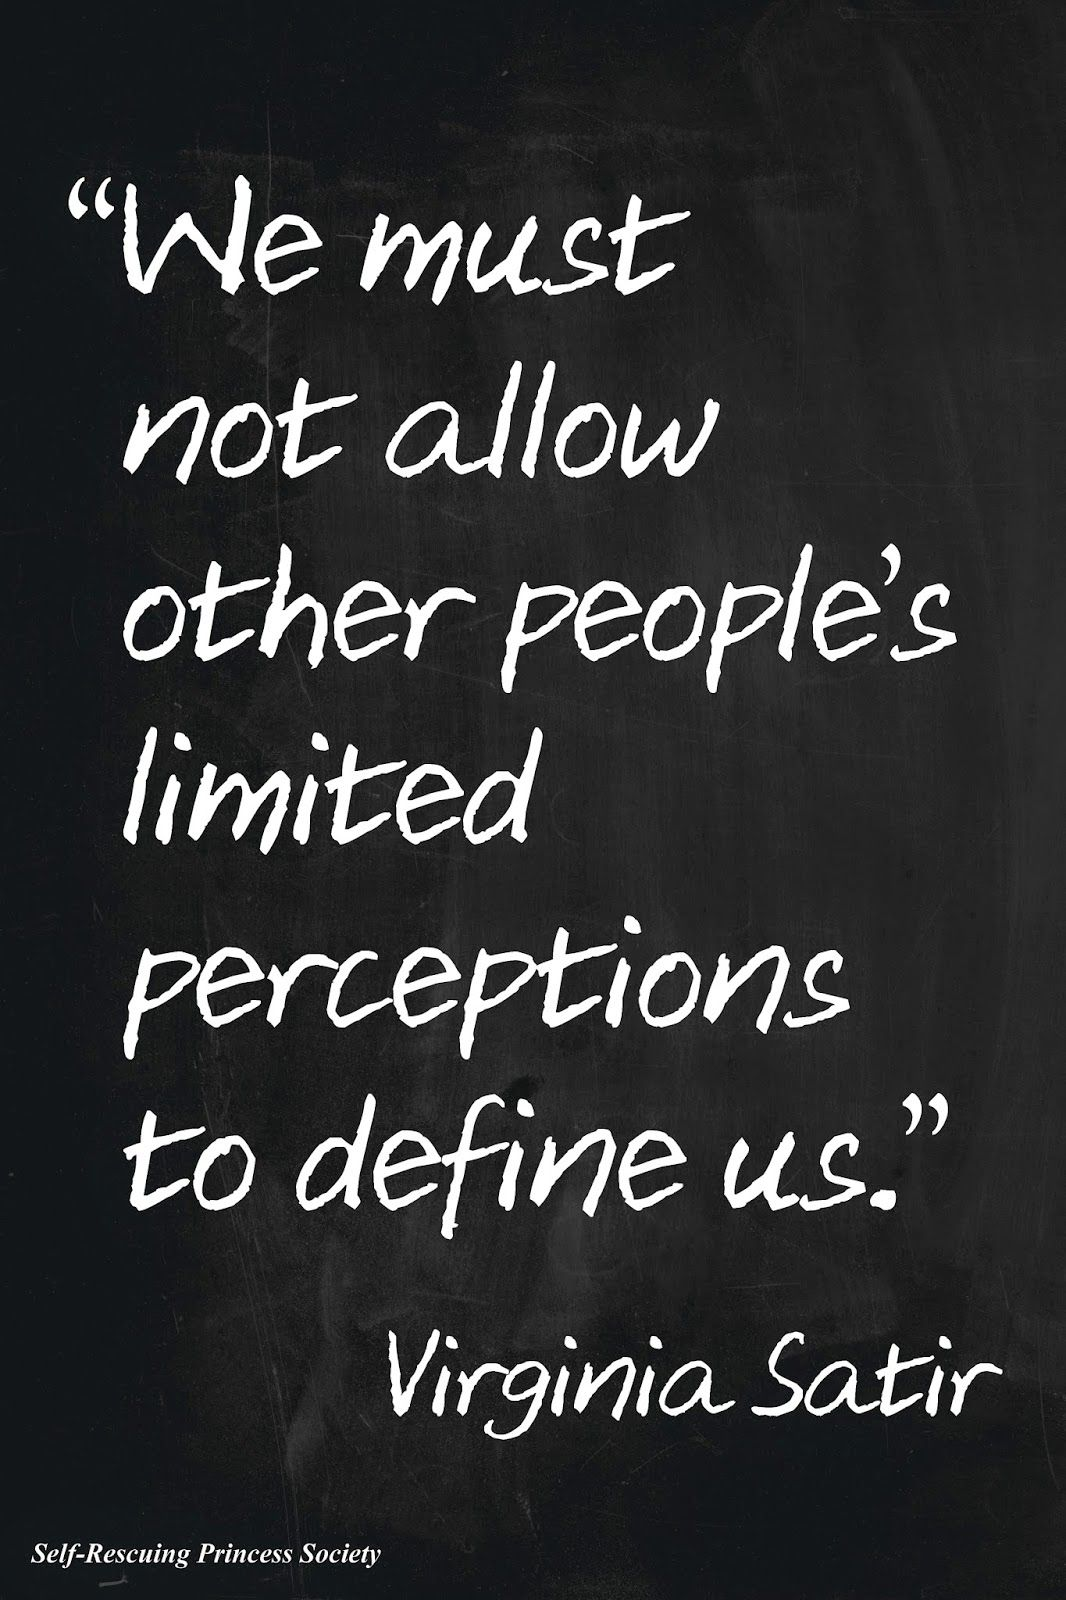 Perception Quotes We must not allow other people's limited perceptions to define us  Perception Quotes